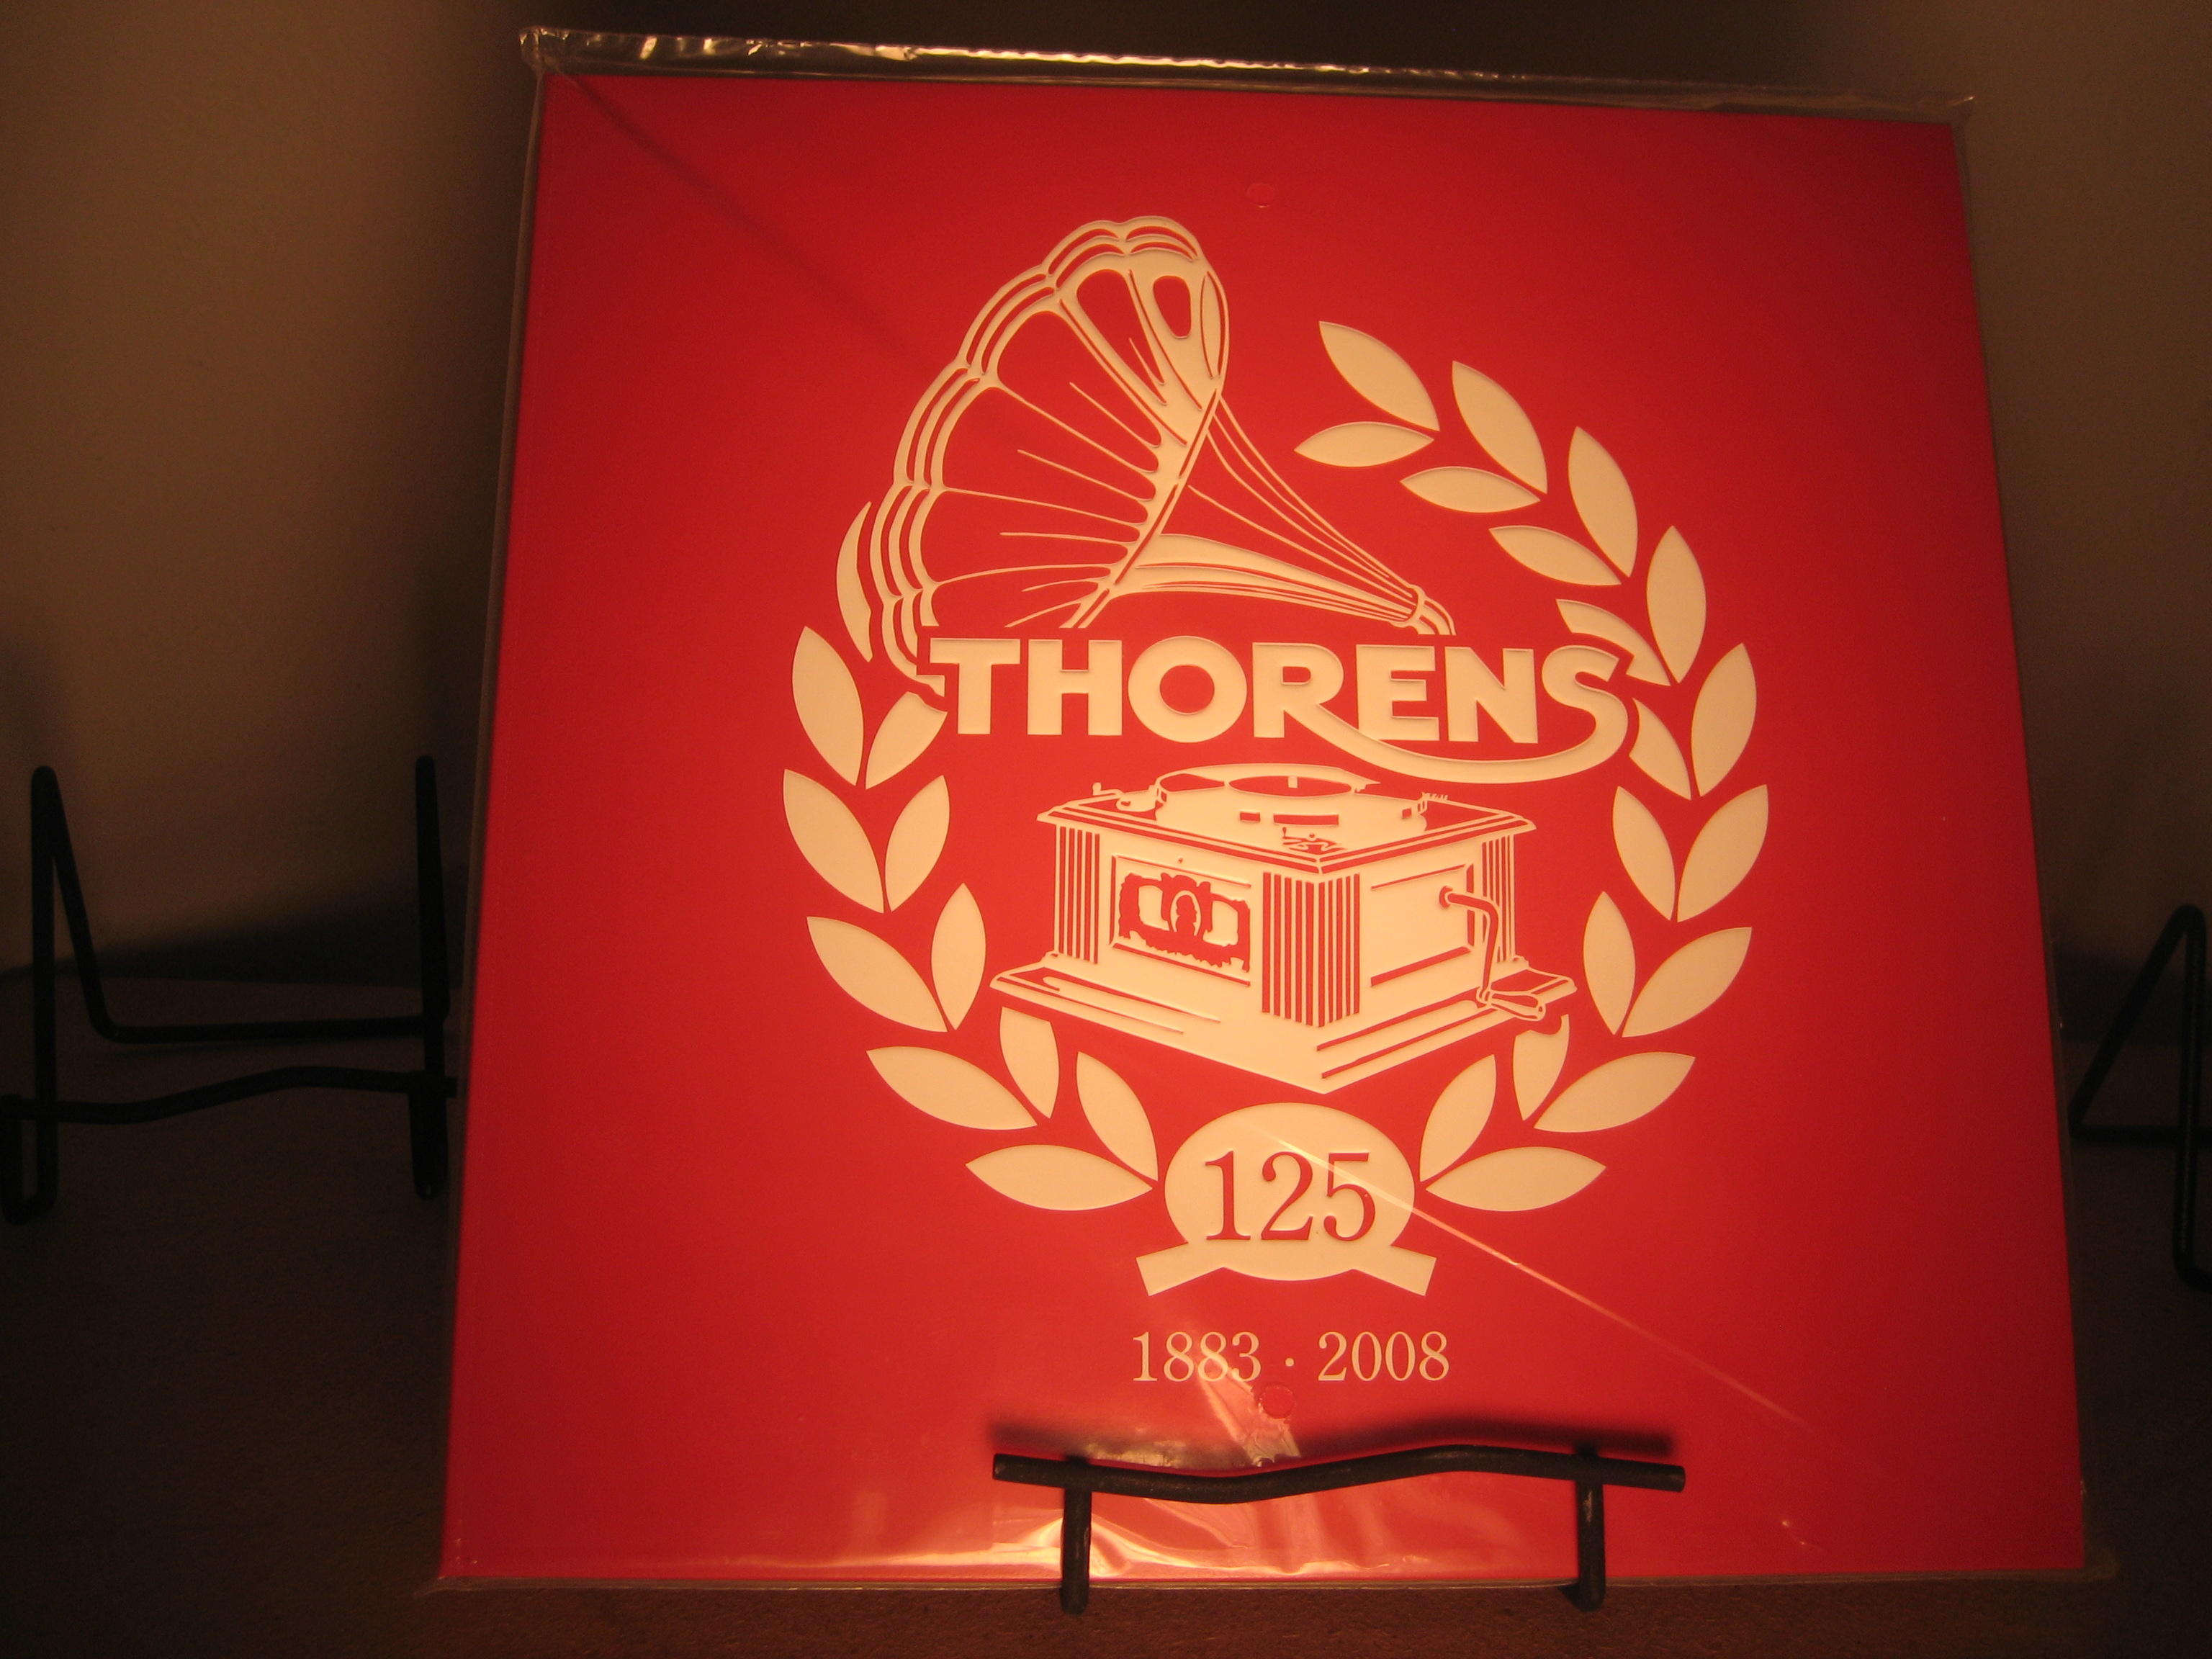 """Thorens, 125th Anniversary - 180 Gram 3 LP Set"" - Product Image"